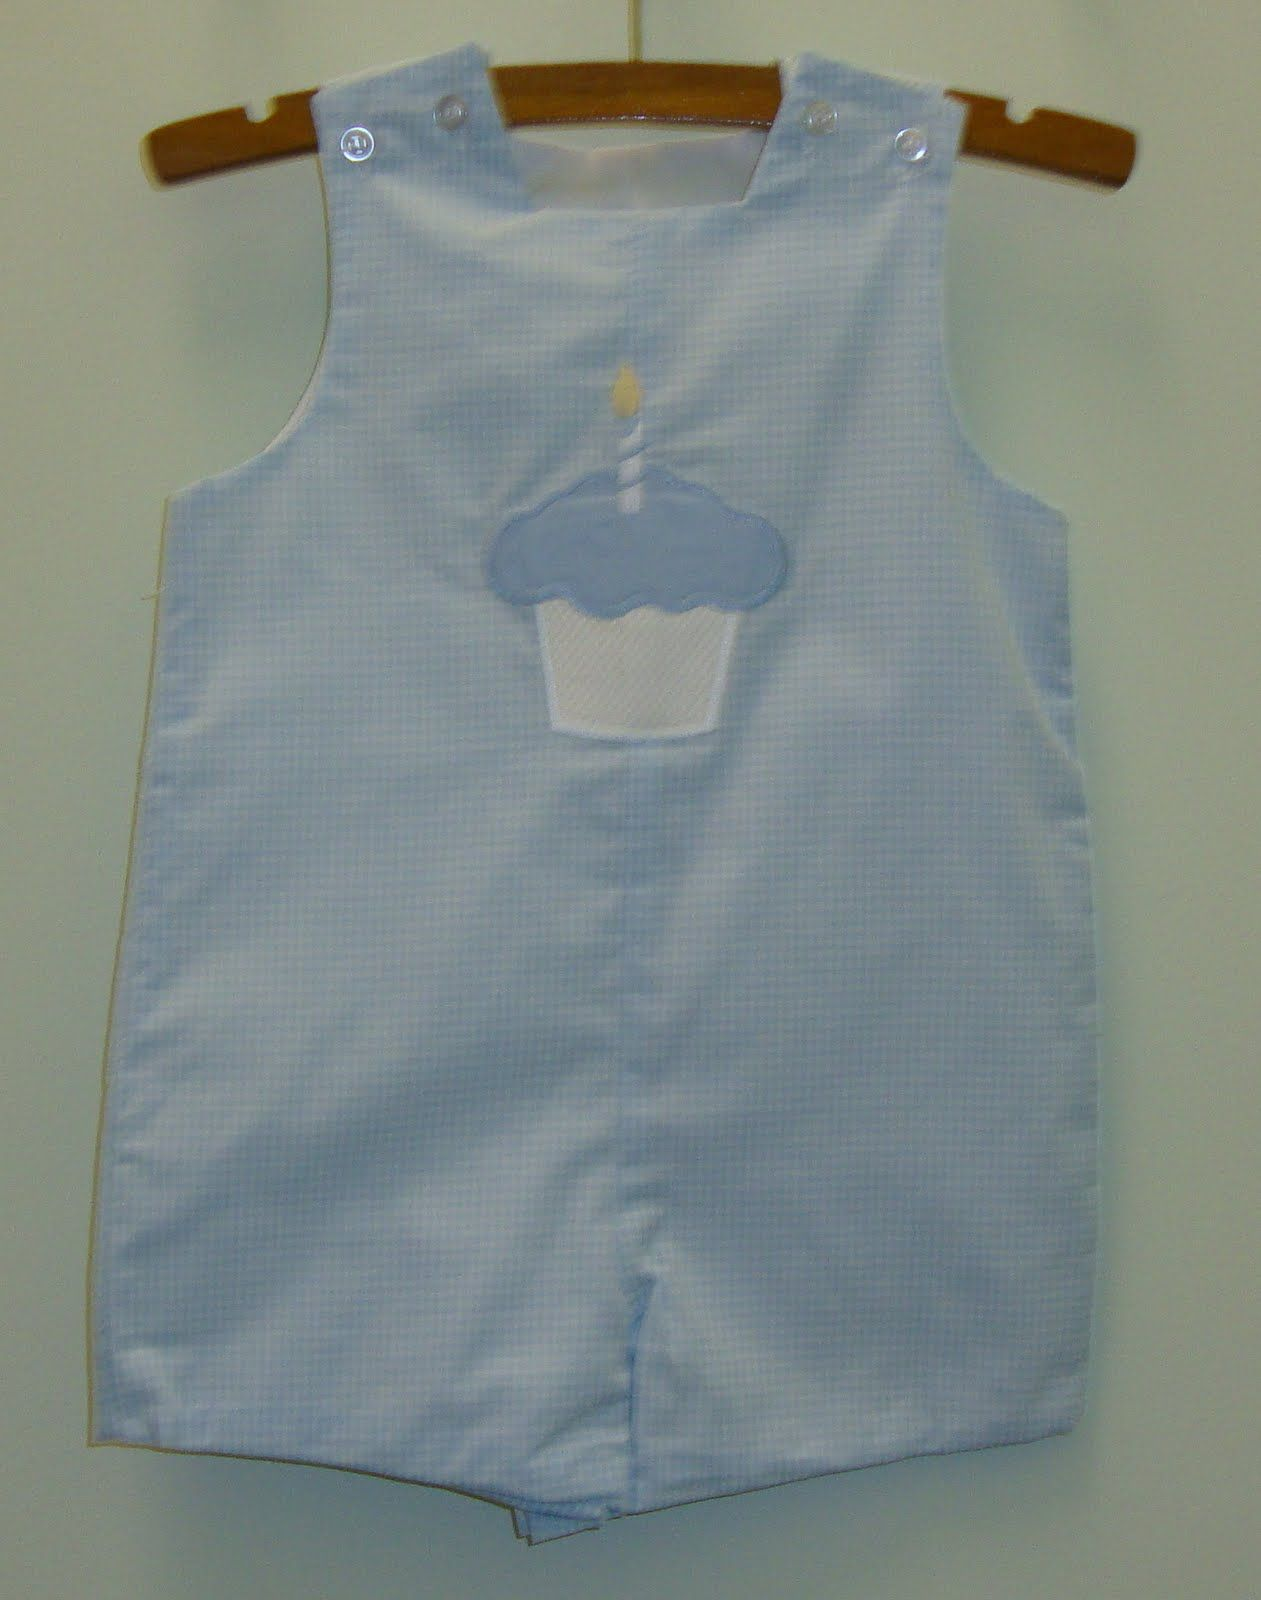 Adorable 1st birthday outfit for a boys 4800 avaiable at